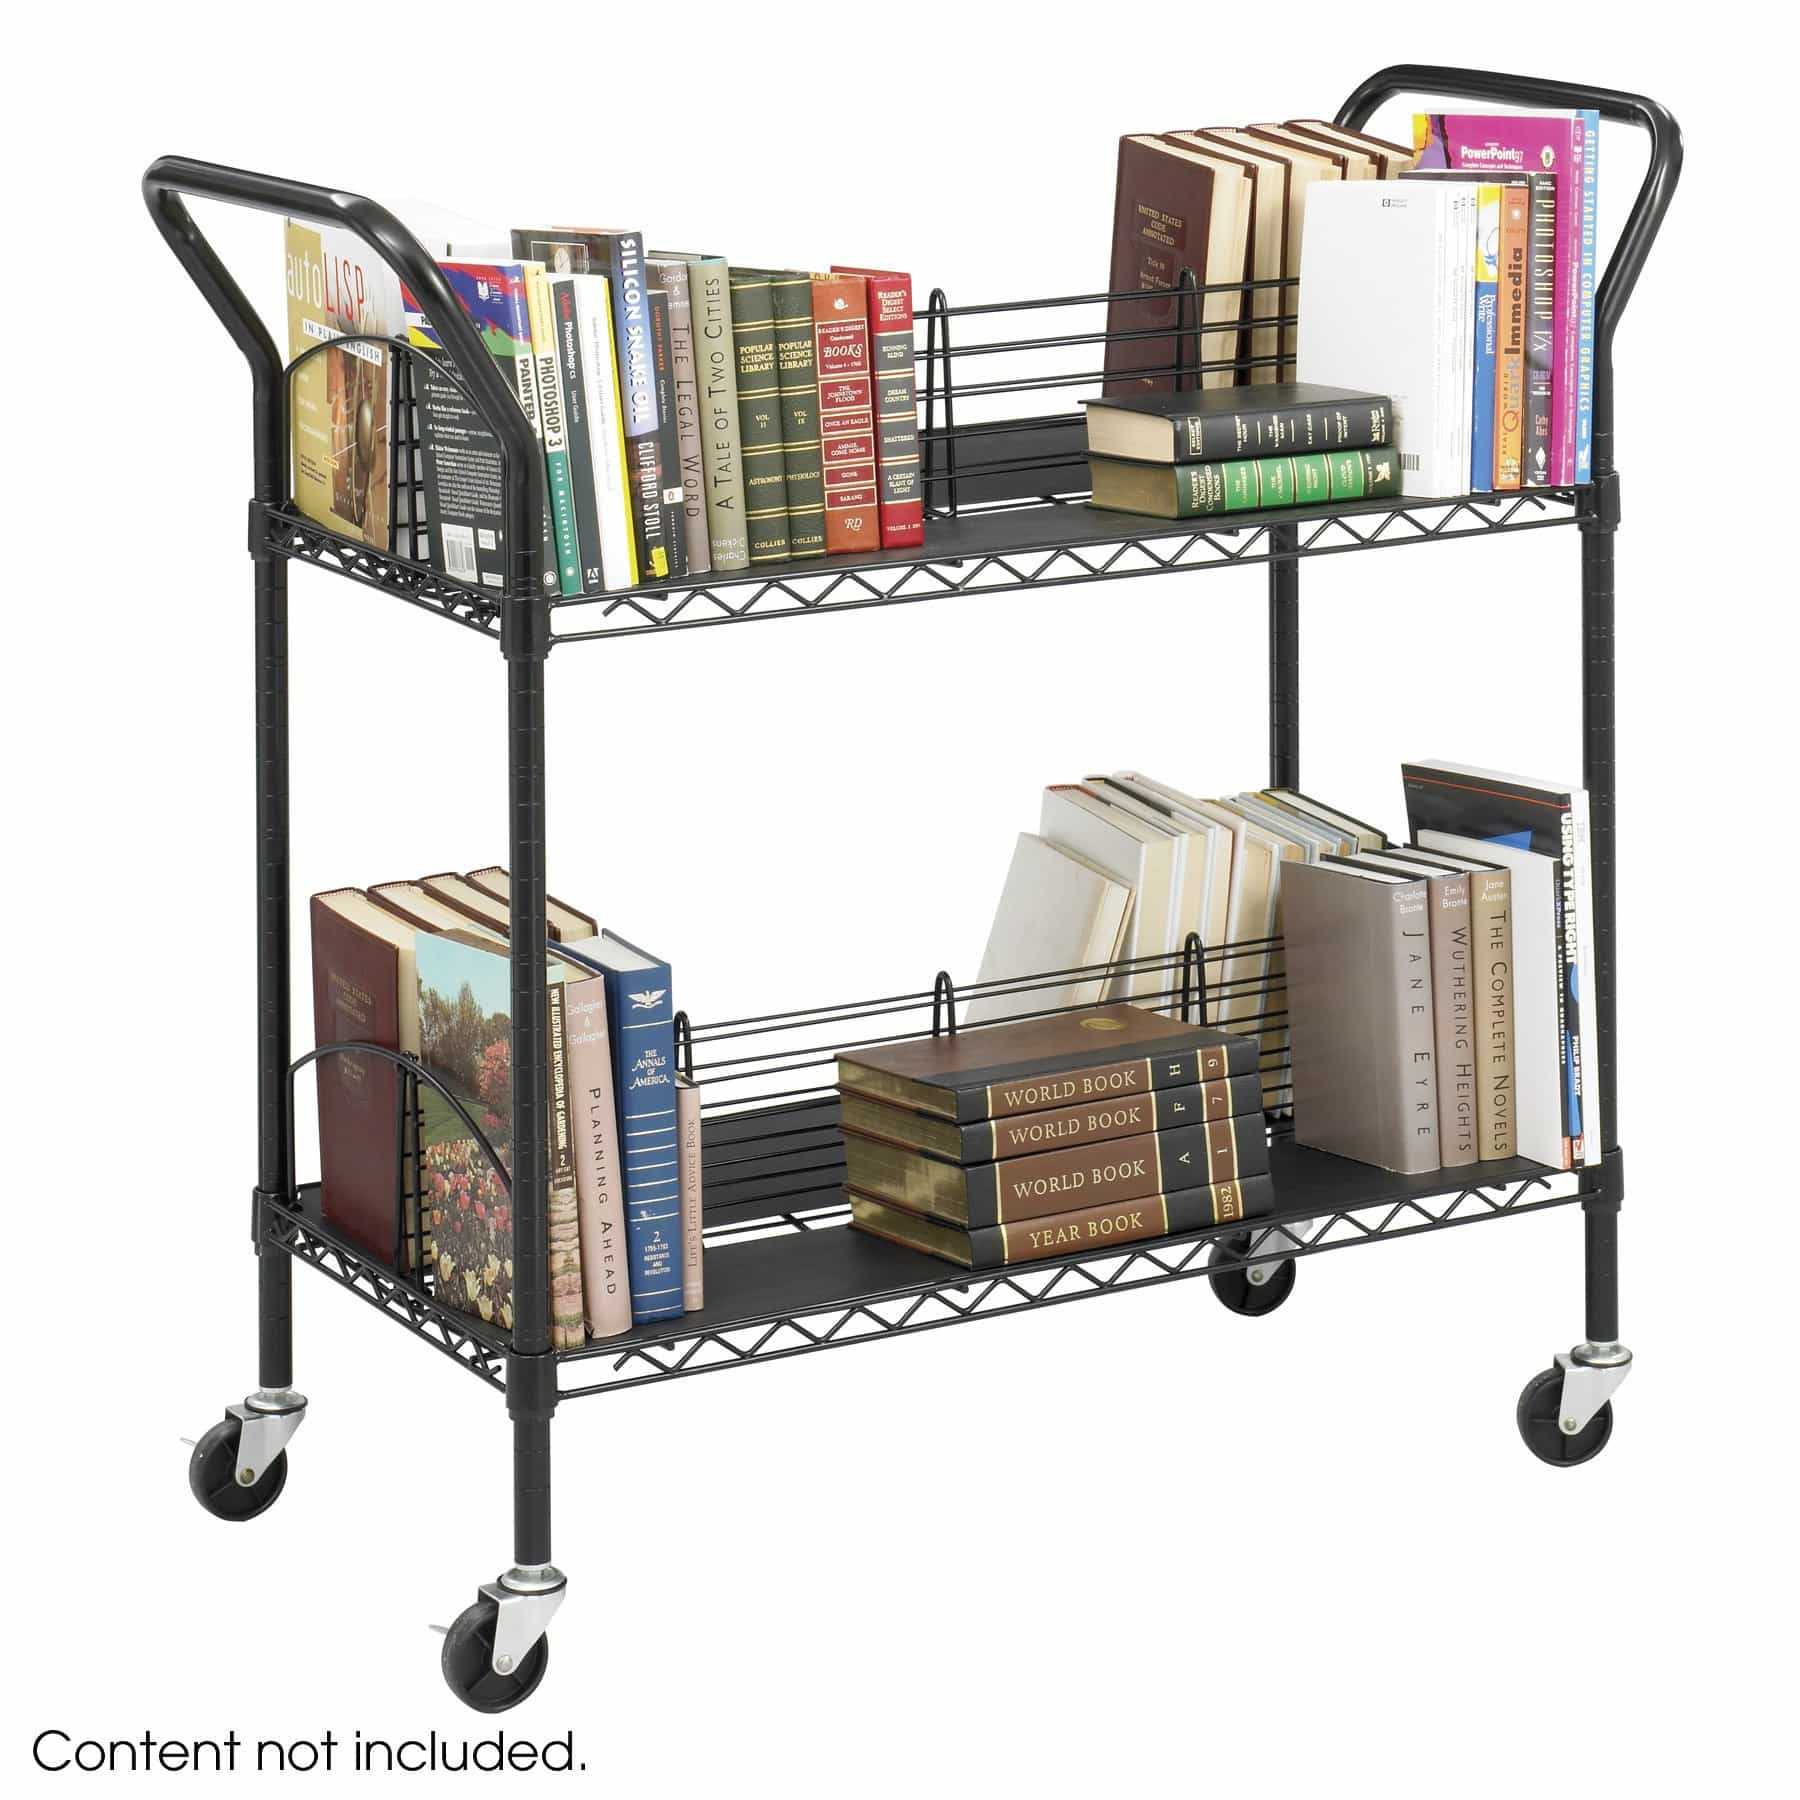 bedinhome - 5333BL Safco Wire Book double-sided cart black steel welded wire shelves - Safco - Utility/Book Carts